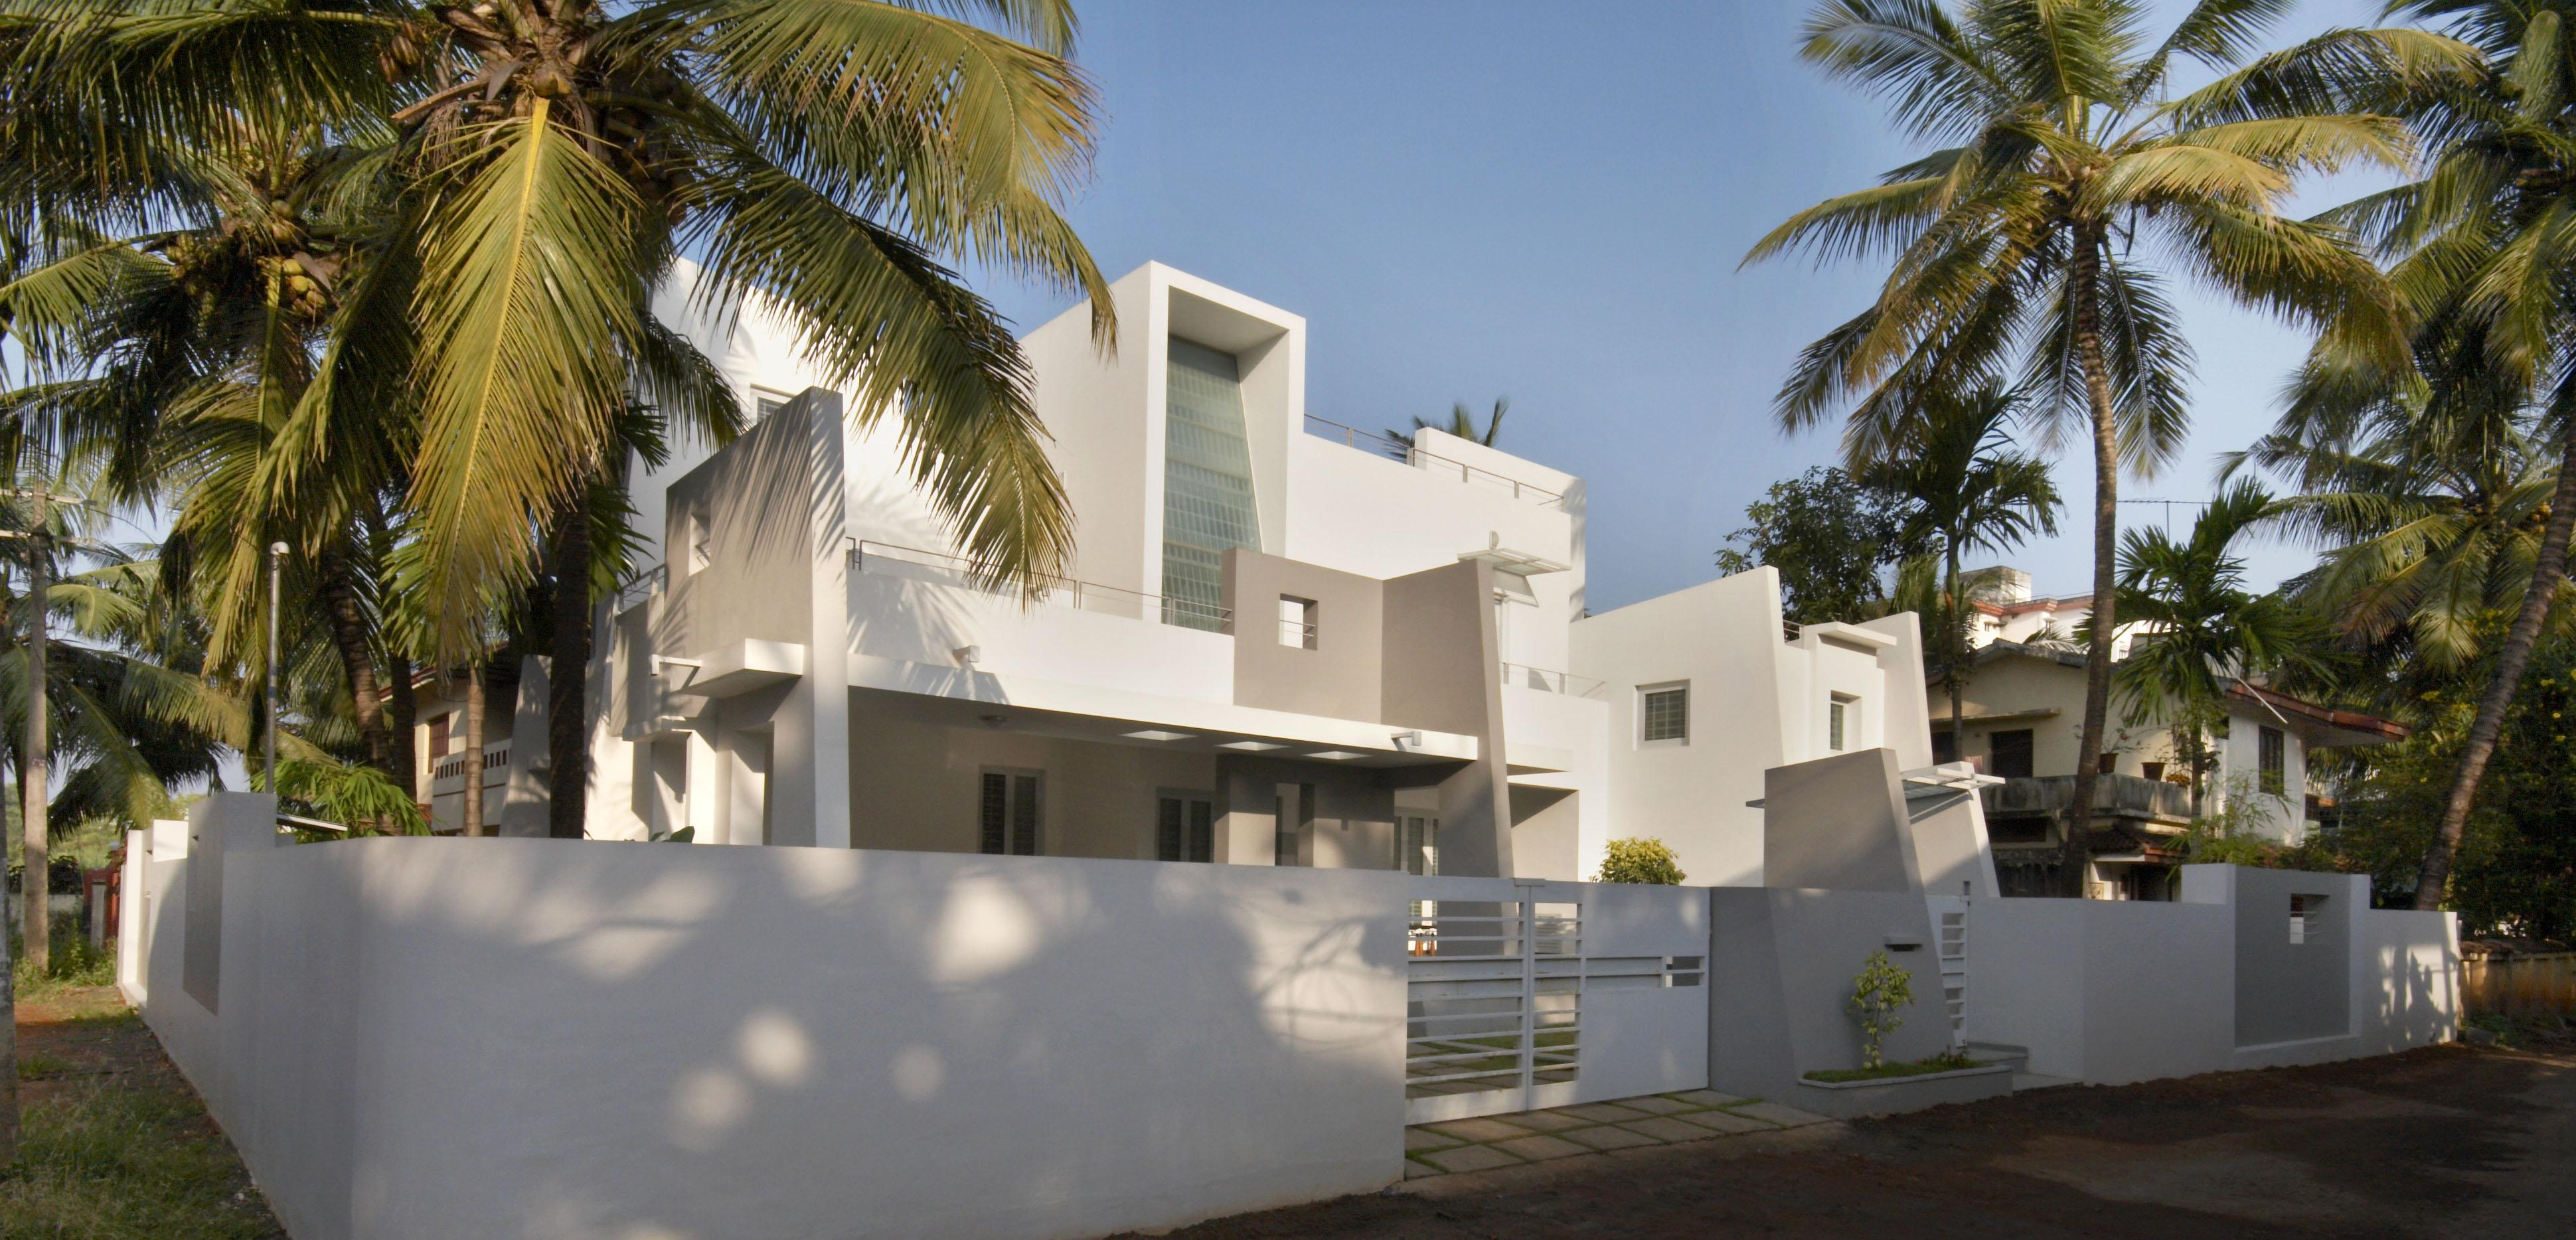 Padippura design images shape kerala home - House In The Tropics Text By Ar Prof Harimohan Pillai